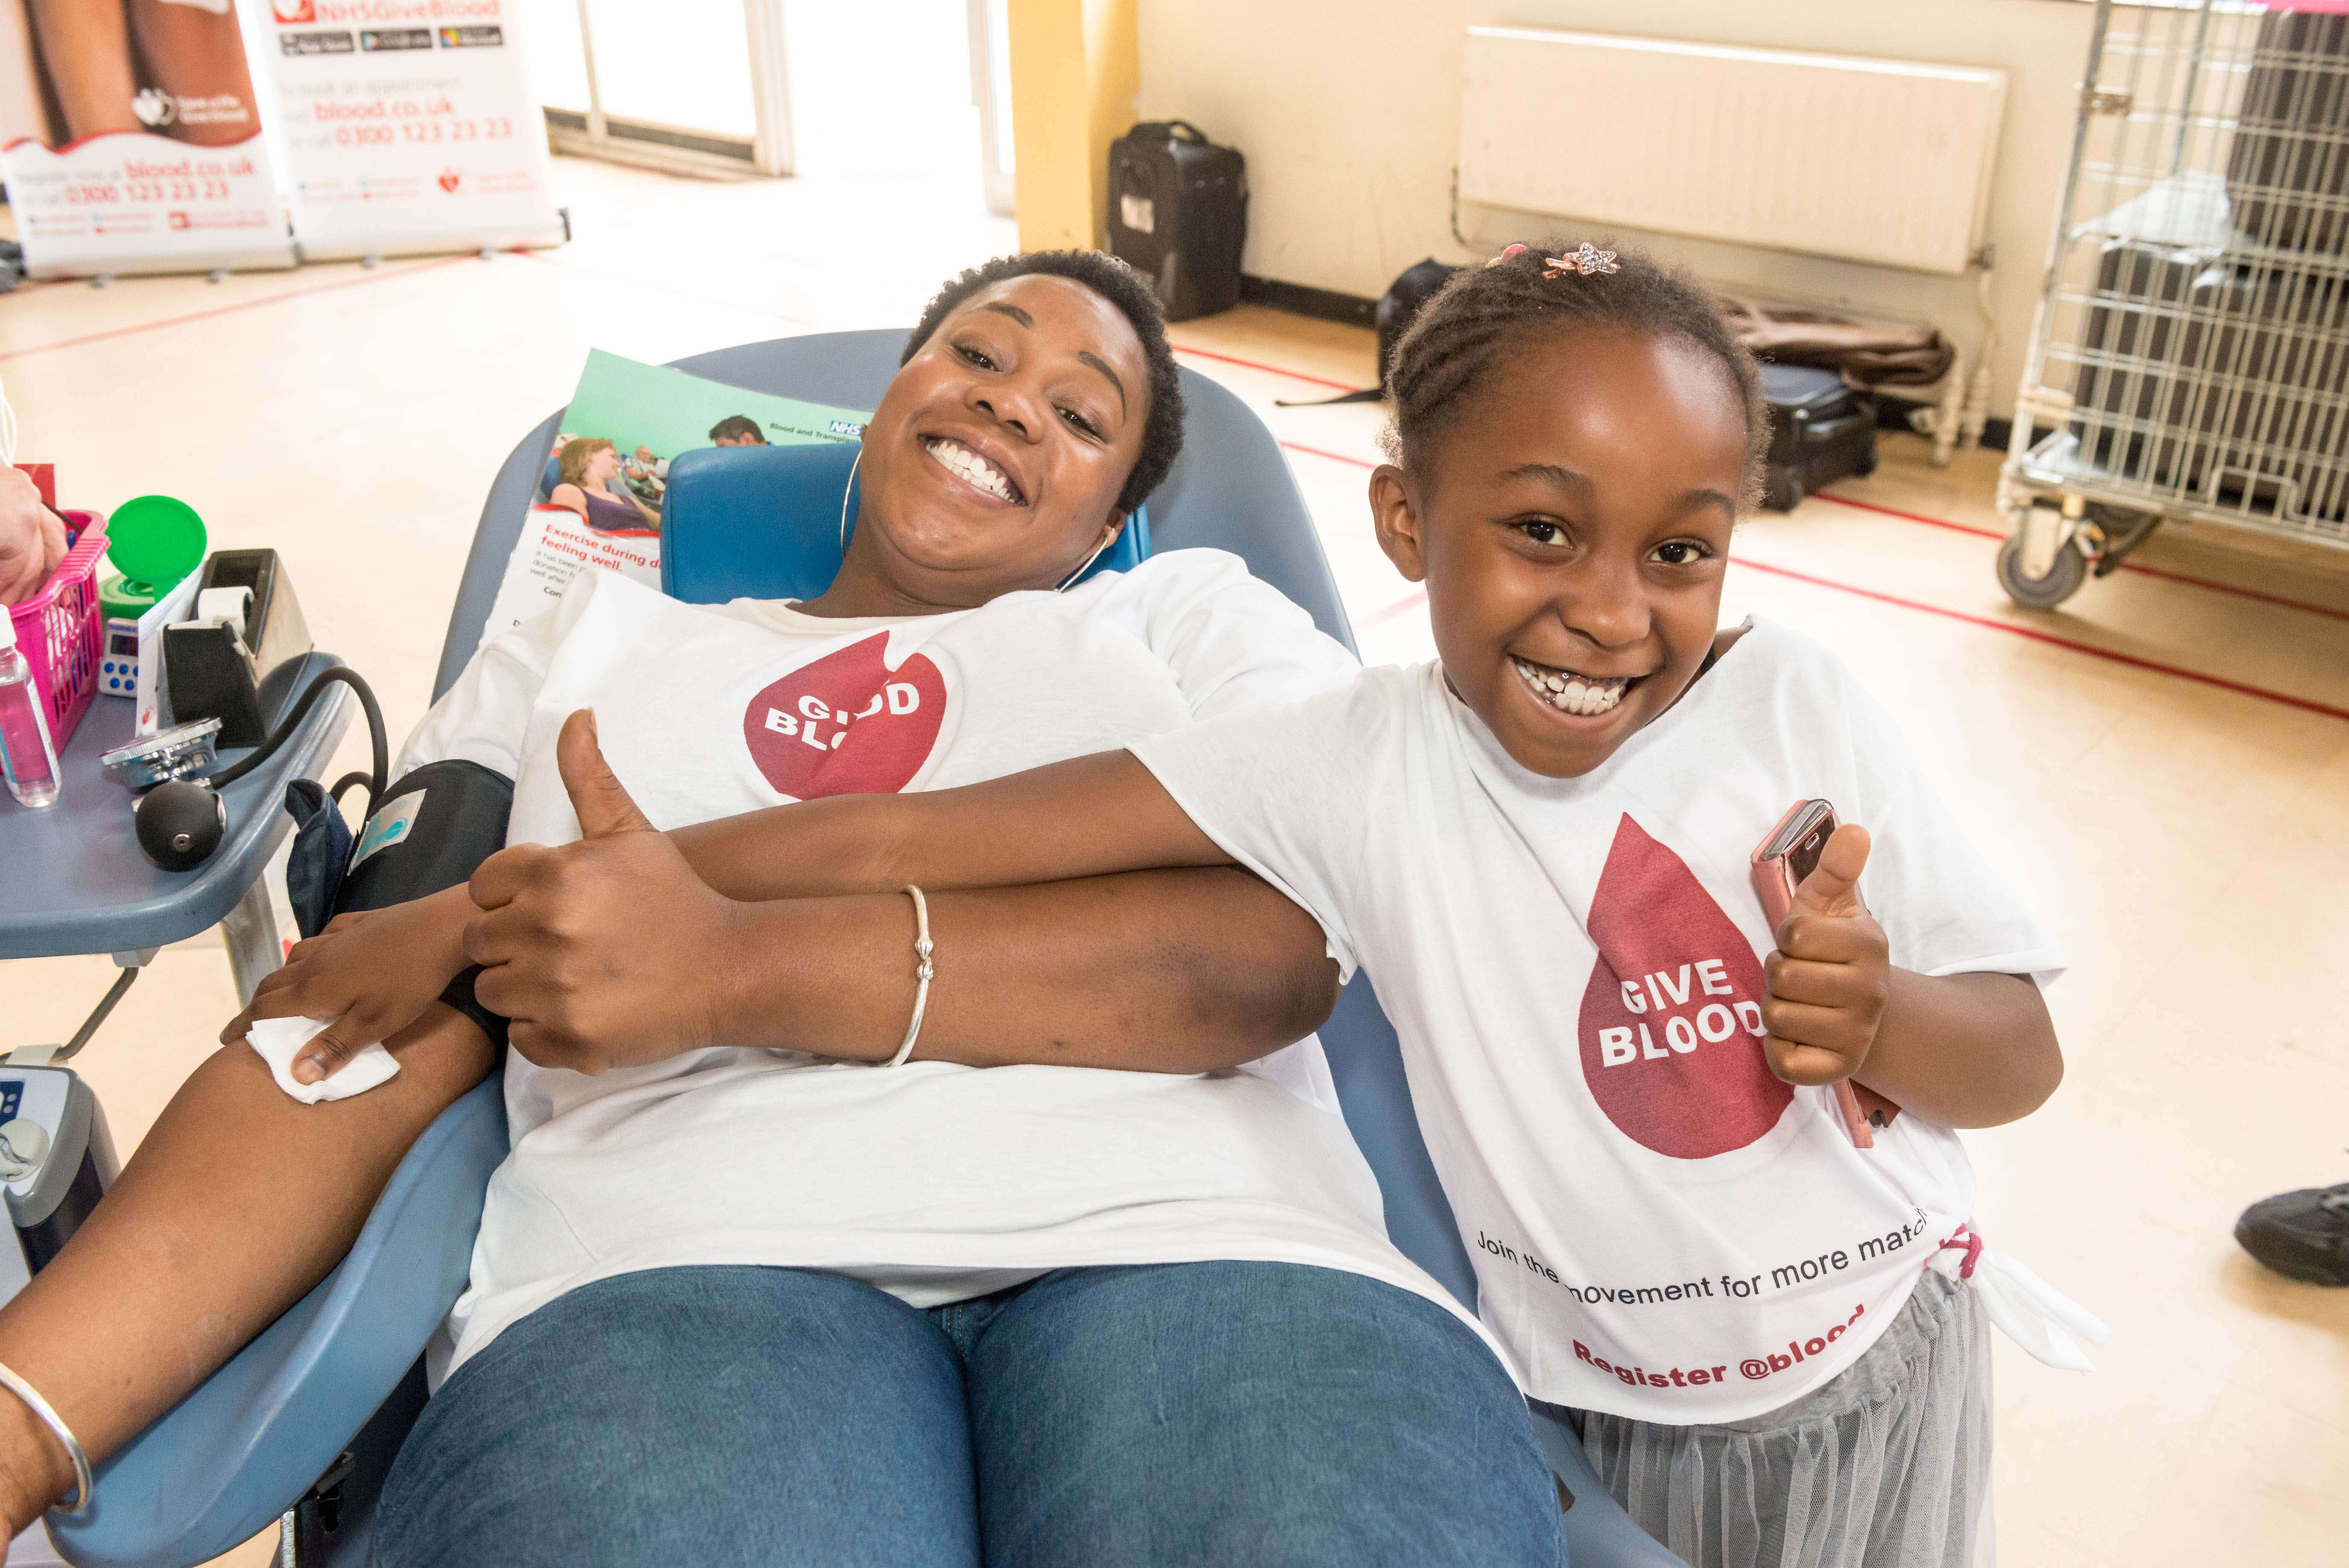 Lisa donates blood while daughter Miai gives the thumbs up